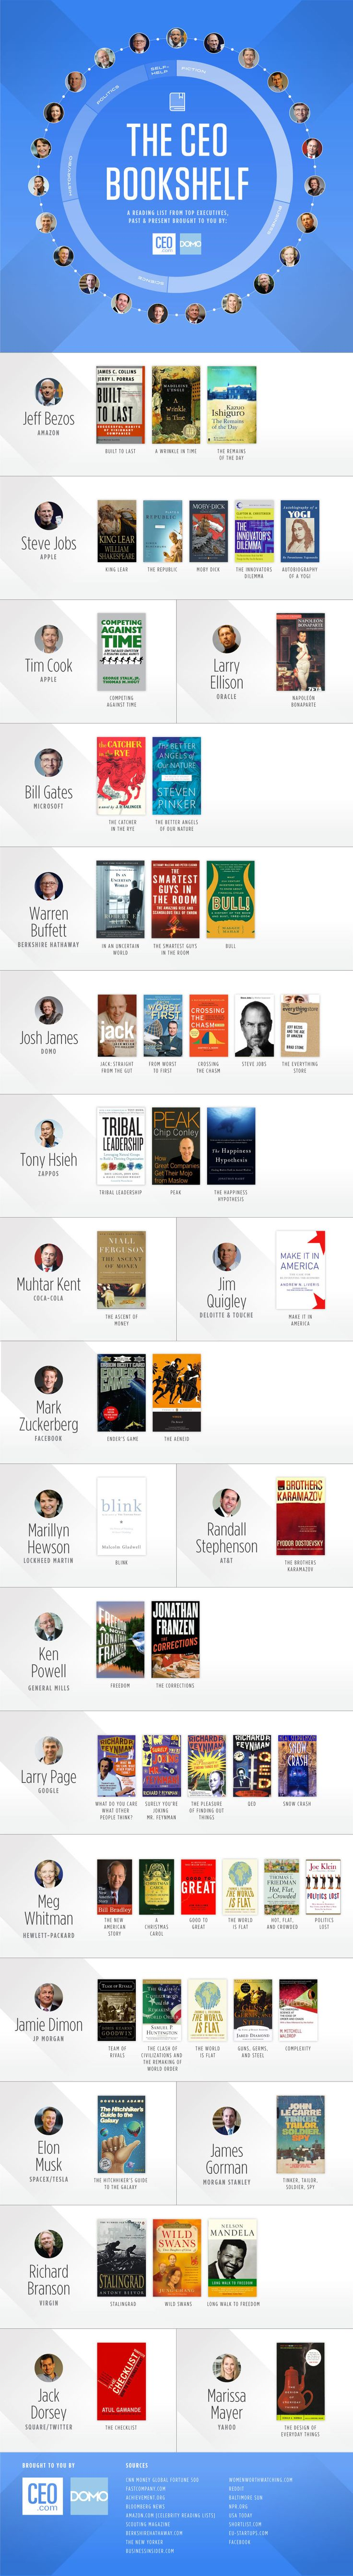 What Richard Branson, Larry Page, Elon Musk and Other Mega-Successful CEOs Are Reading